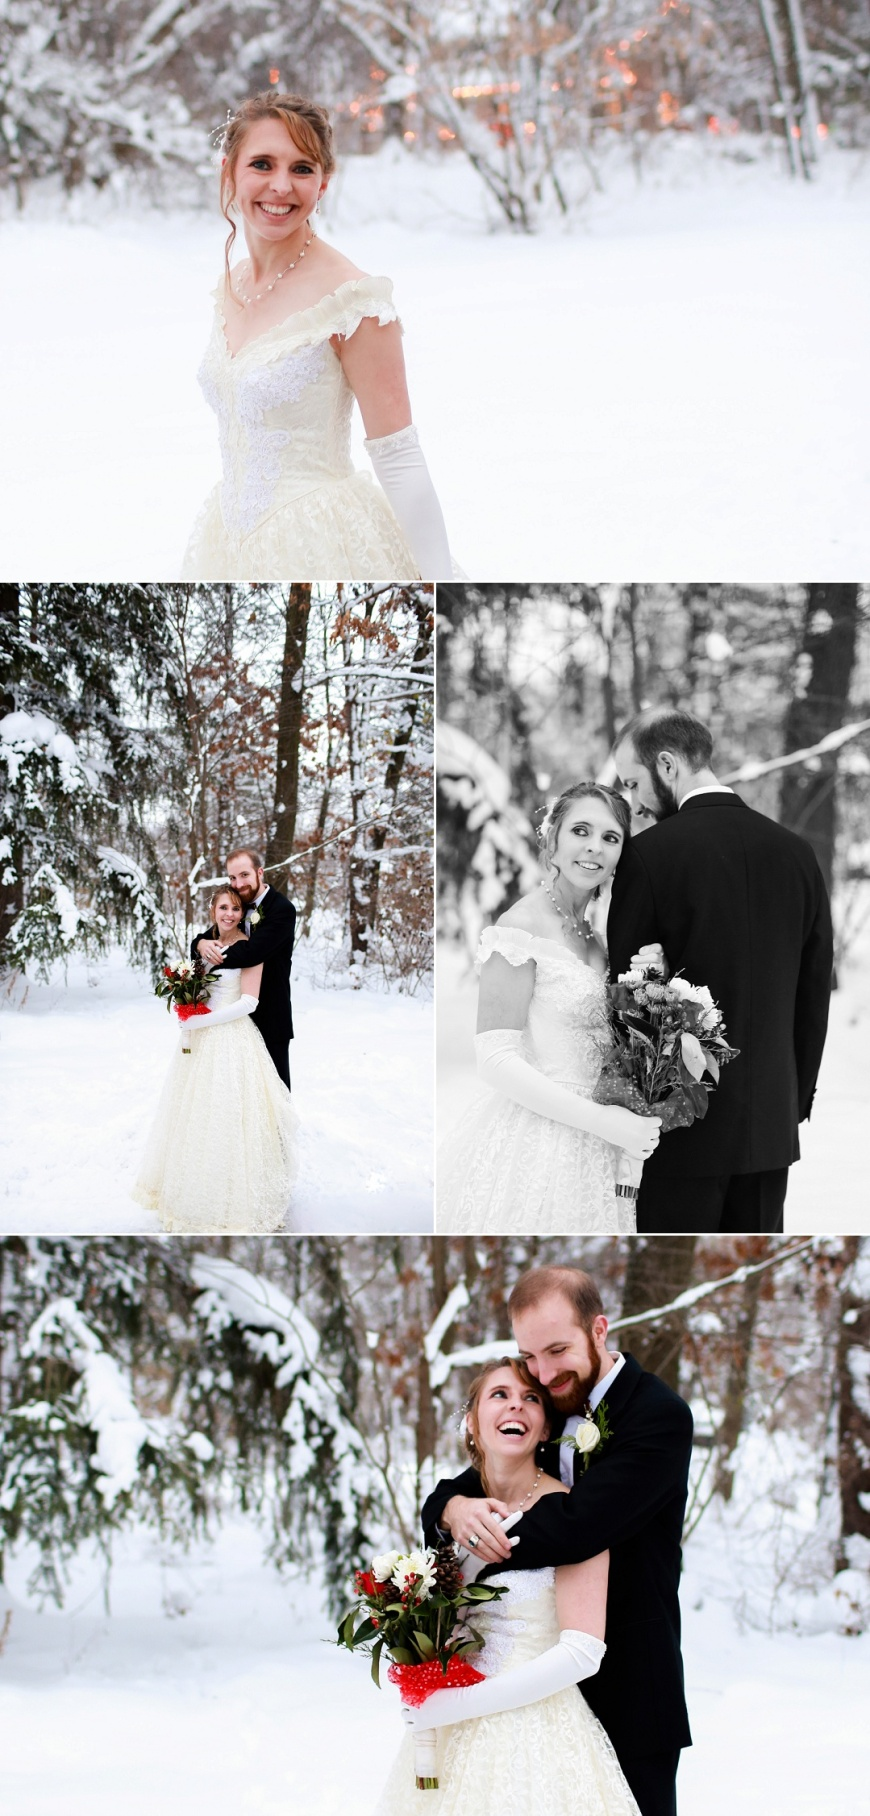 Kalamazoo-Winter-Wedding-Photographer_1051.jpg